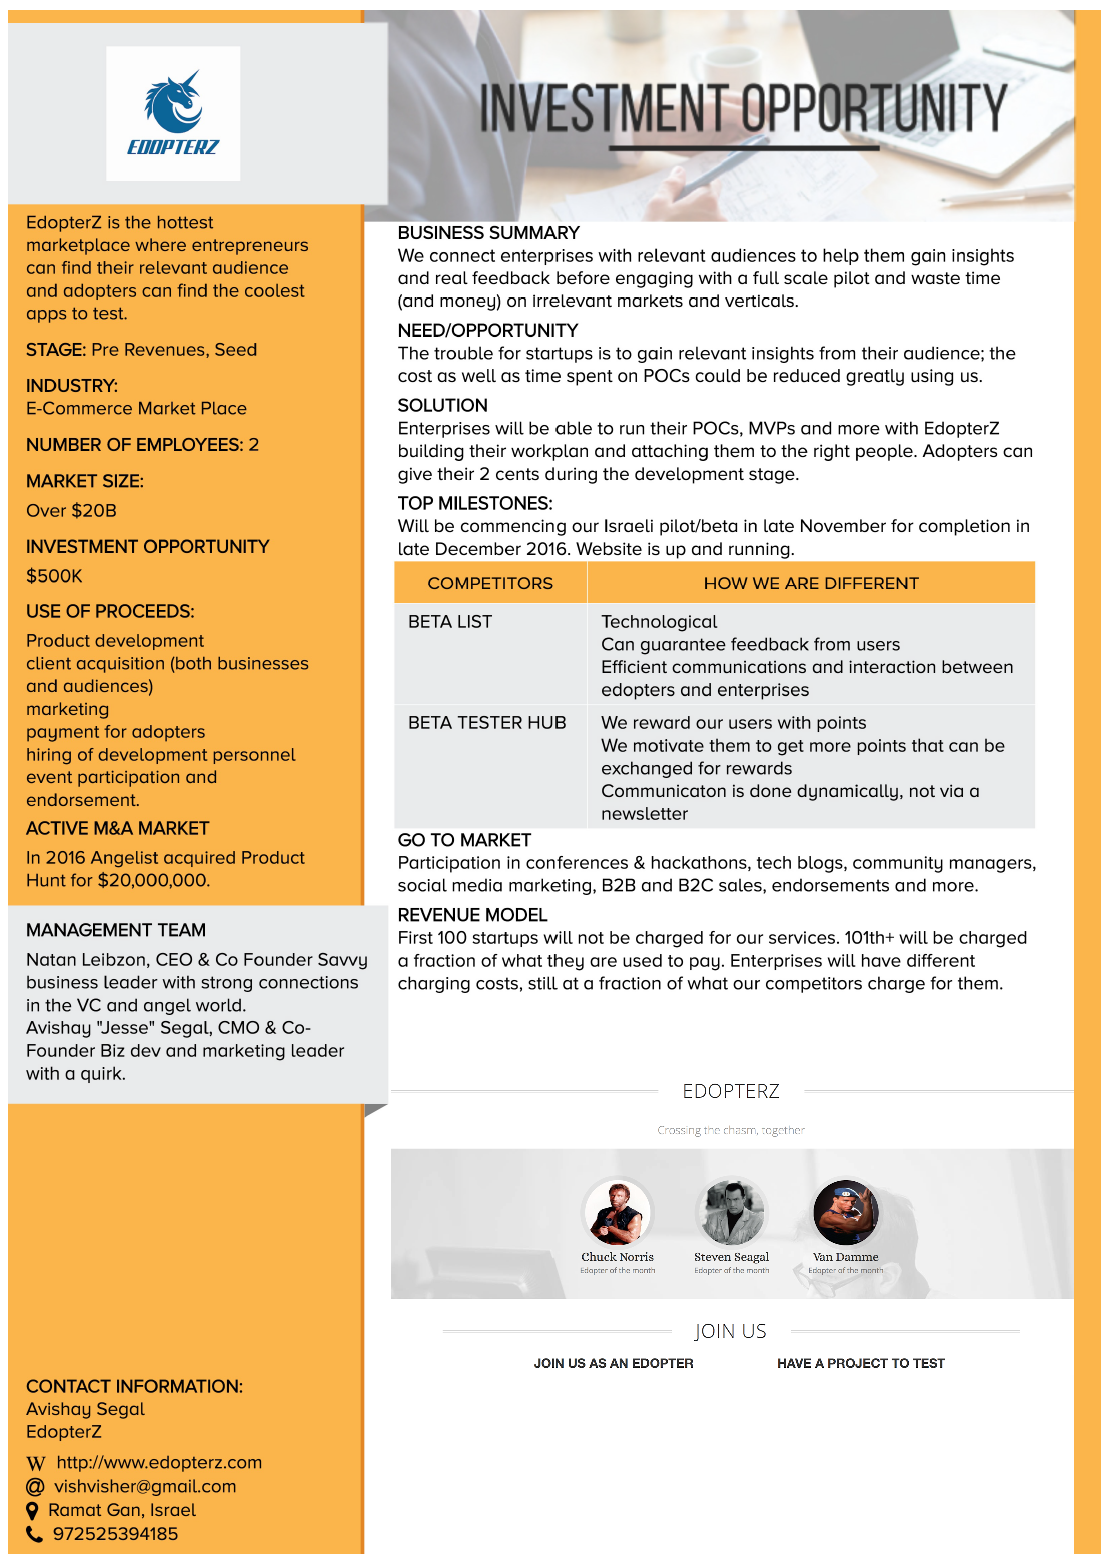 edopterz enhanced design one pager | investor one pager, Powerpoint templates